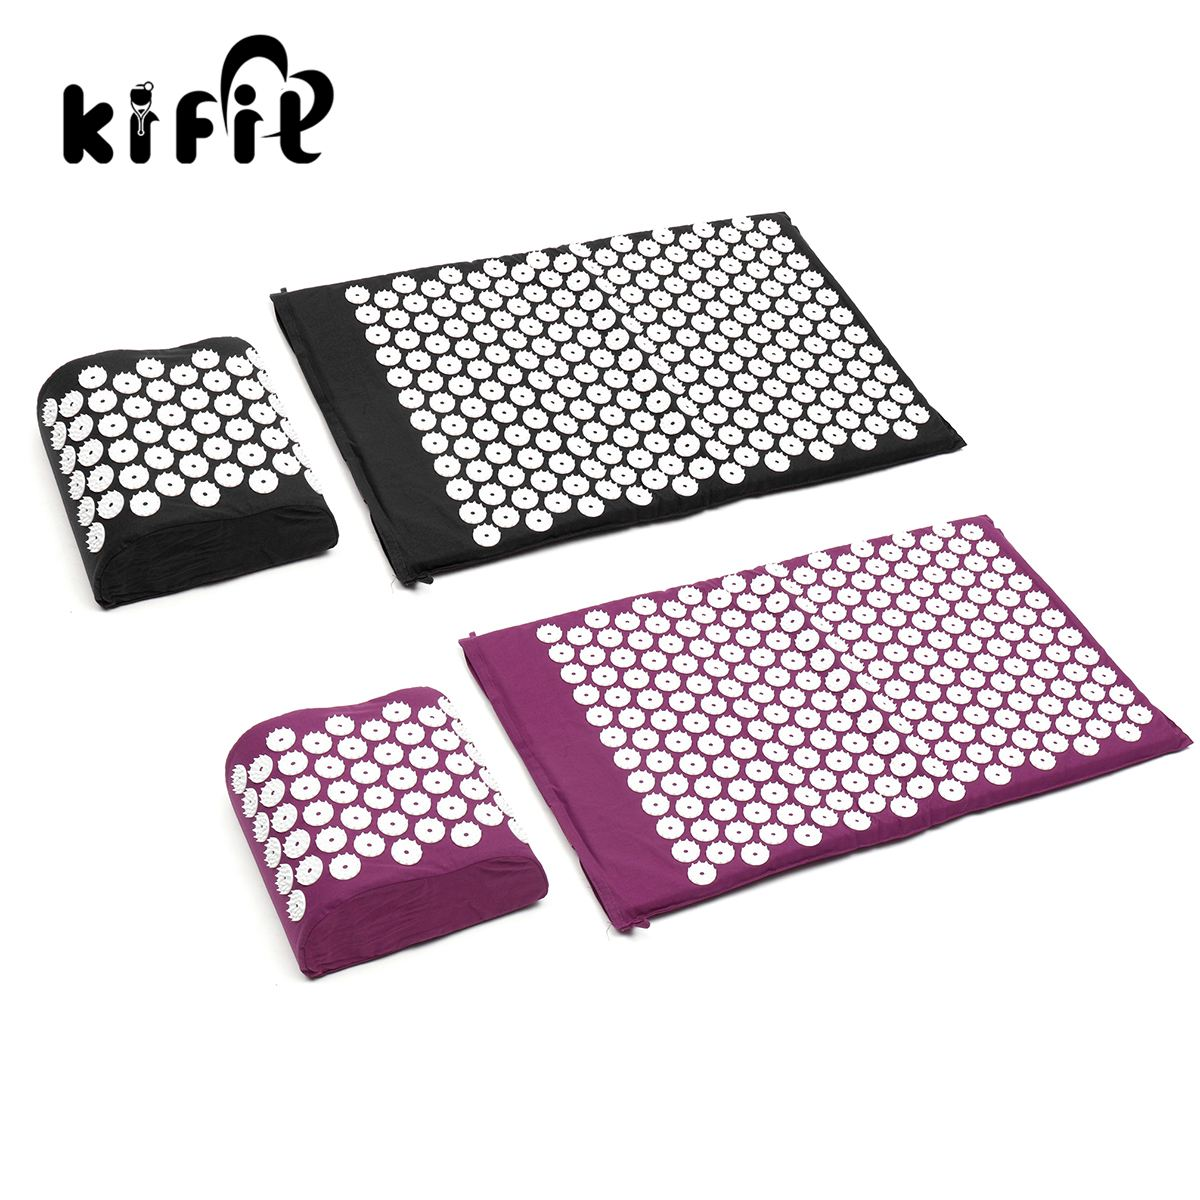 KIFIT Comfortable Acupressure Massage Pillow Mat Yoga Bed Pilates Nail Needle Pressure Neck Health Beauty Care Tool